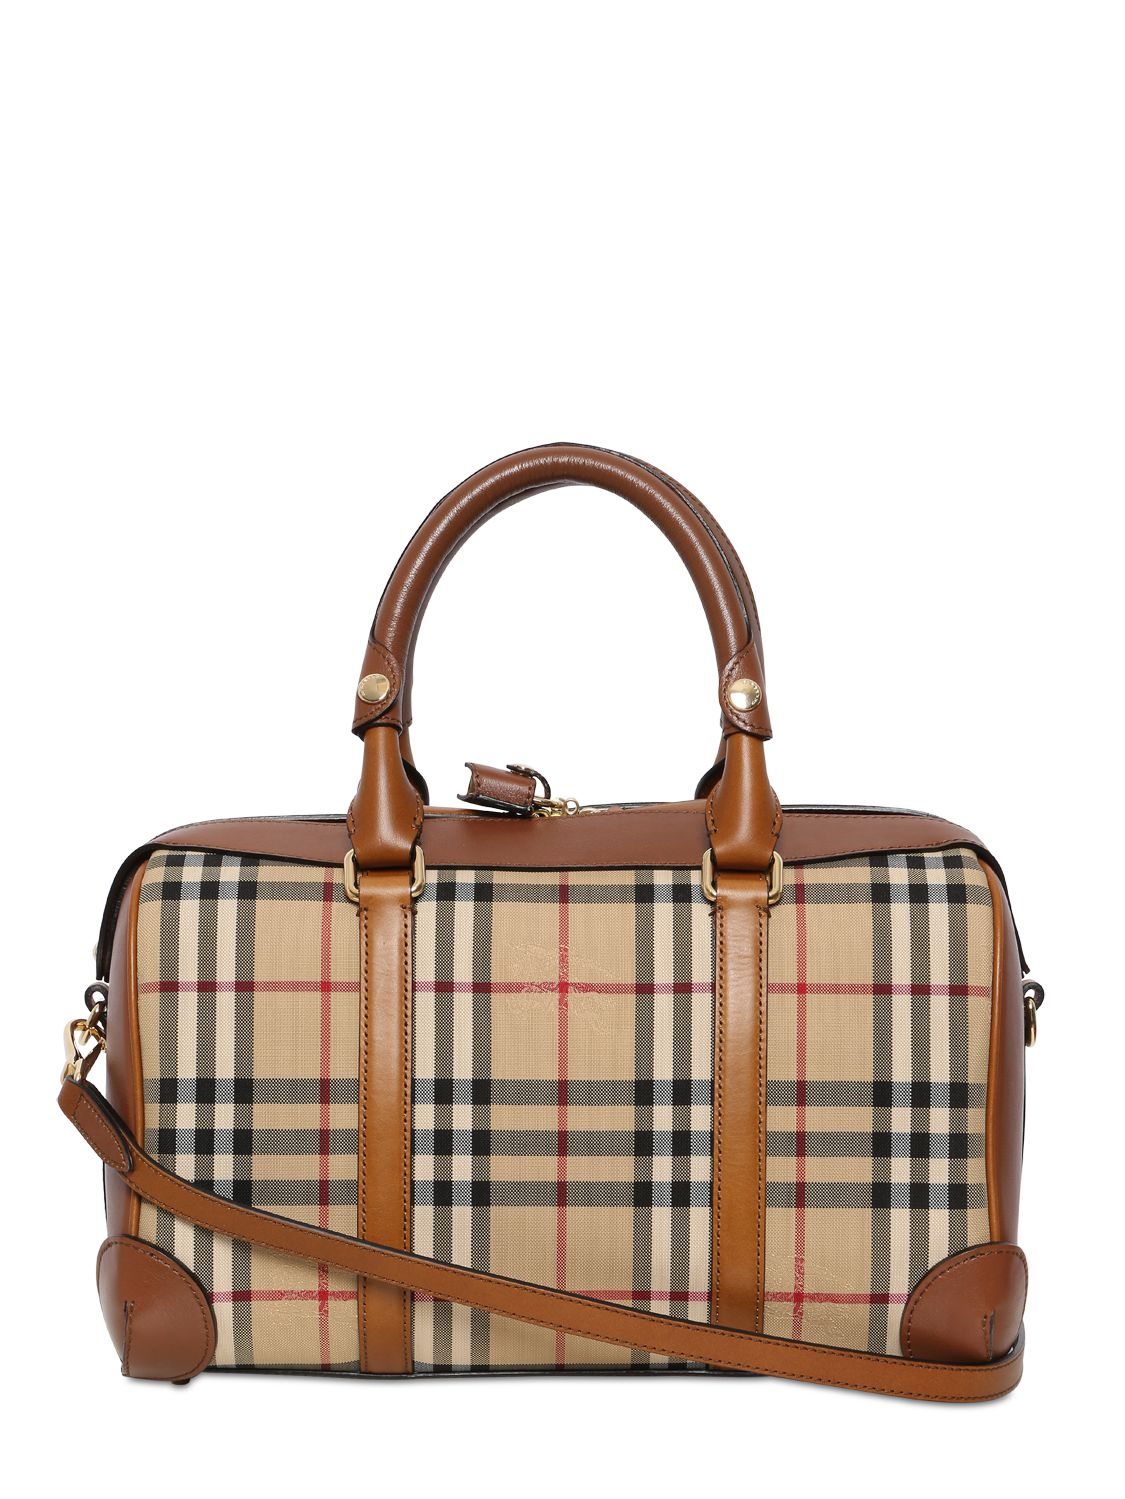 Burberry Medium Alchester Bridle House Check Bag in Brown - Lyst f54d114d6c